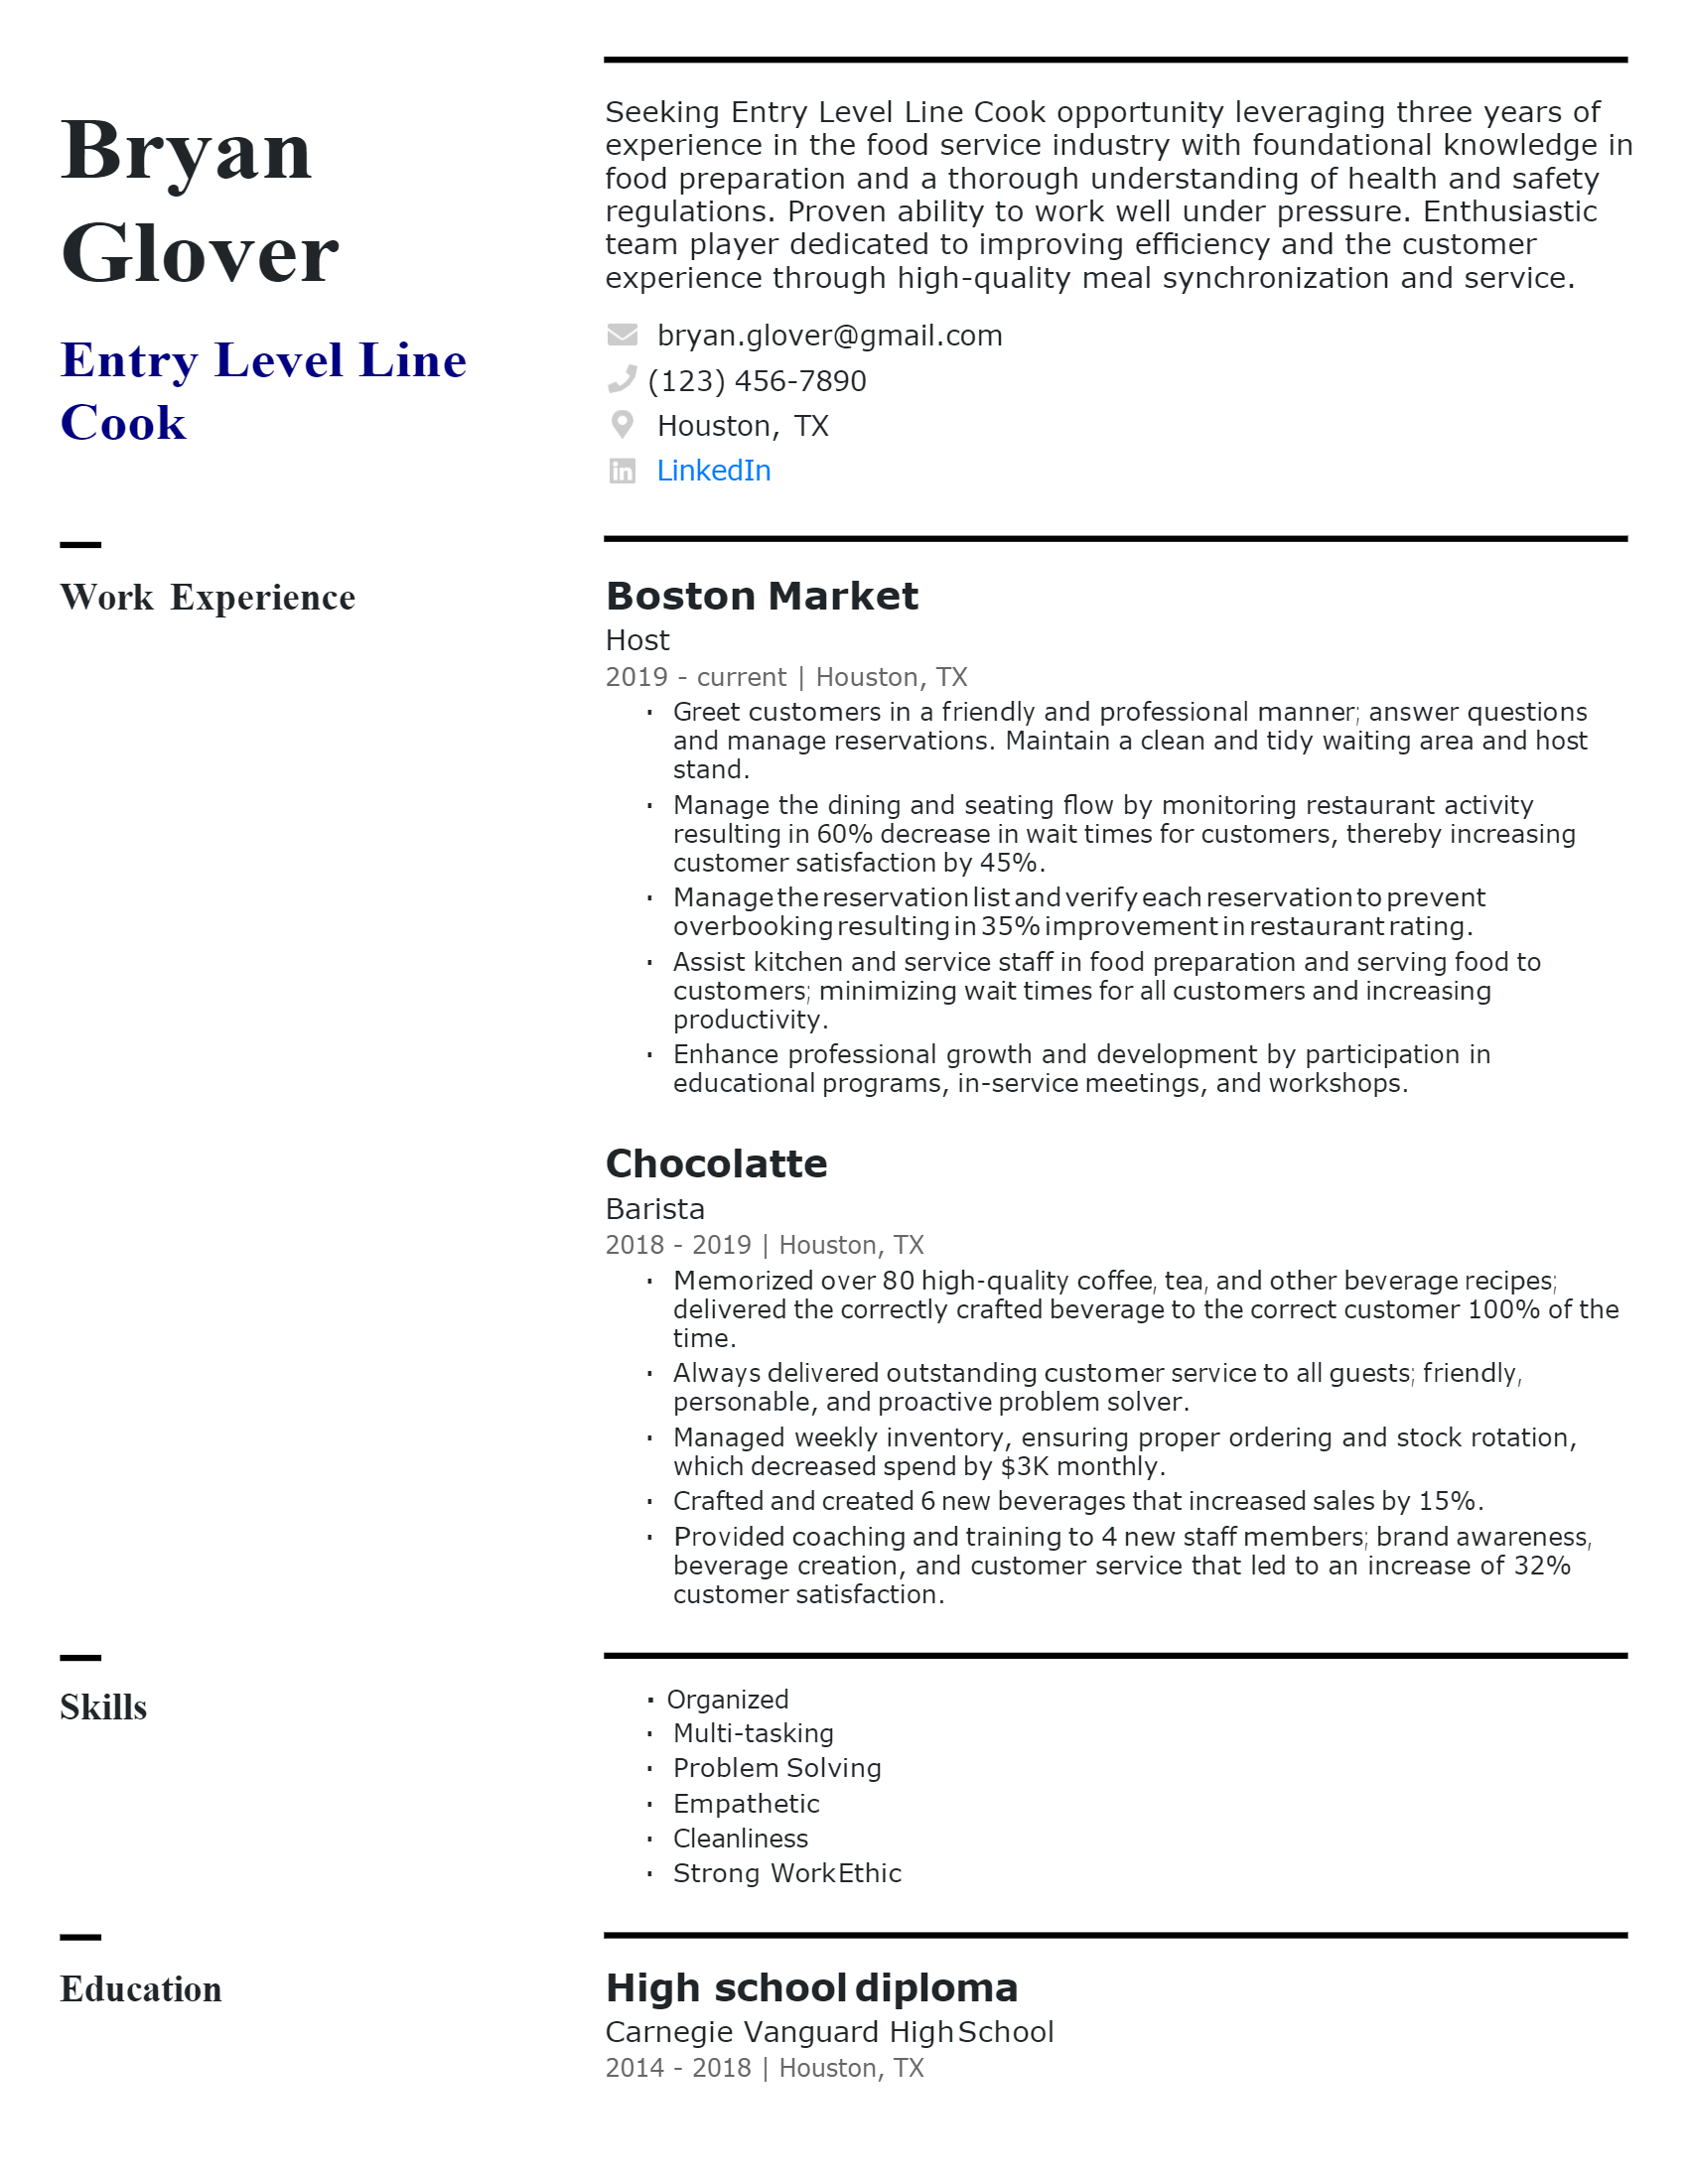 Entry-level Line Cook Resume .Docx (Word)